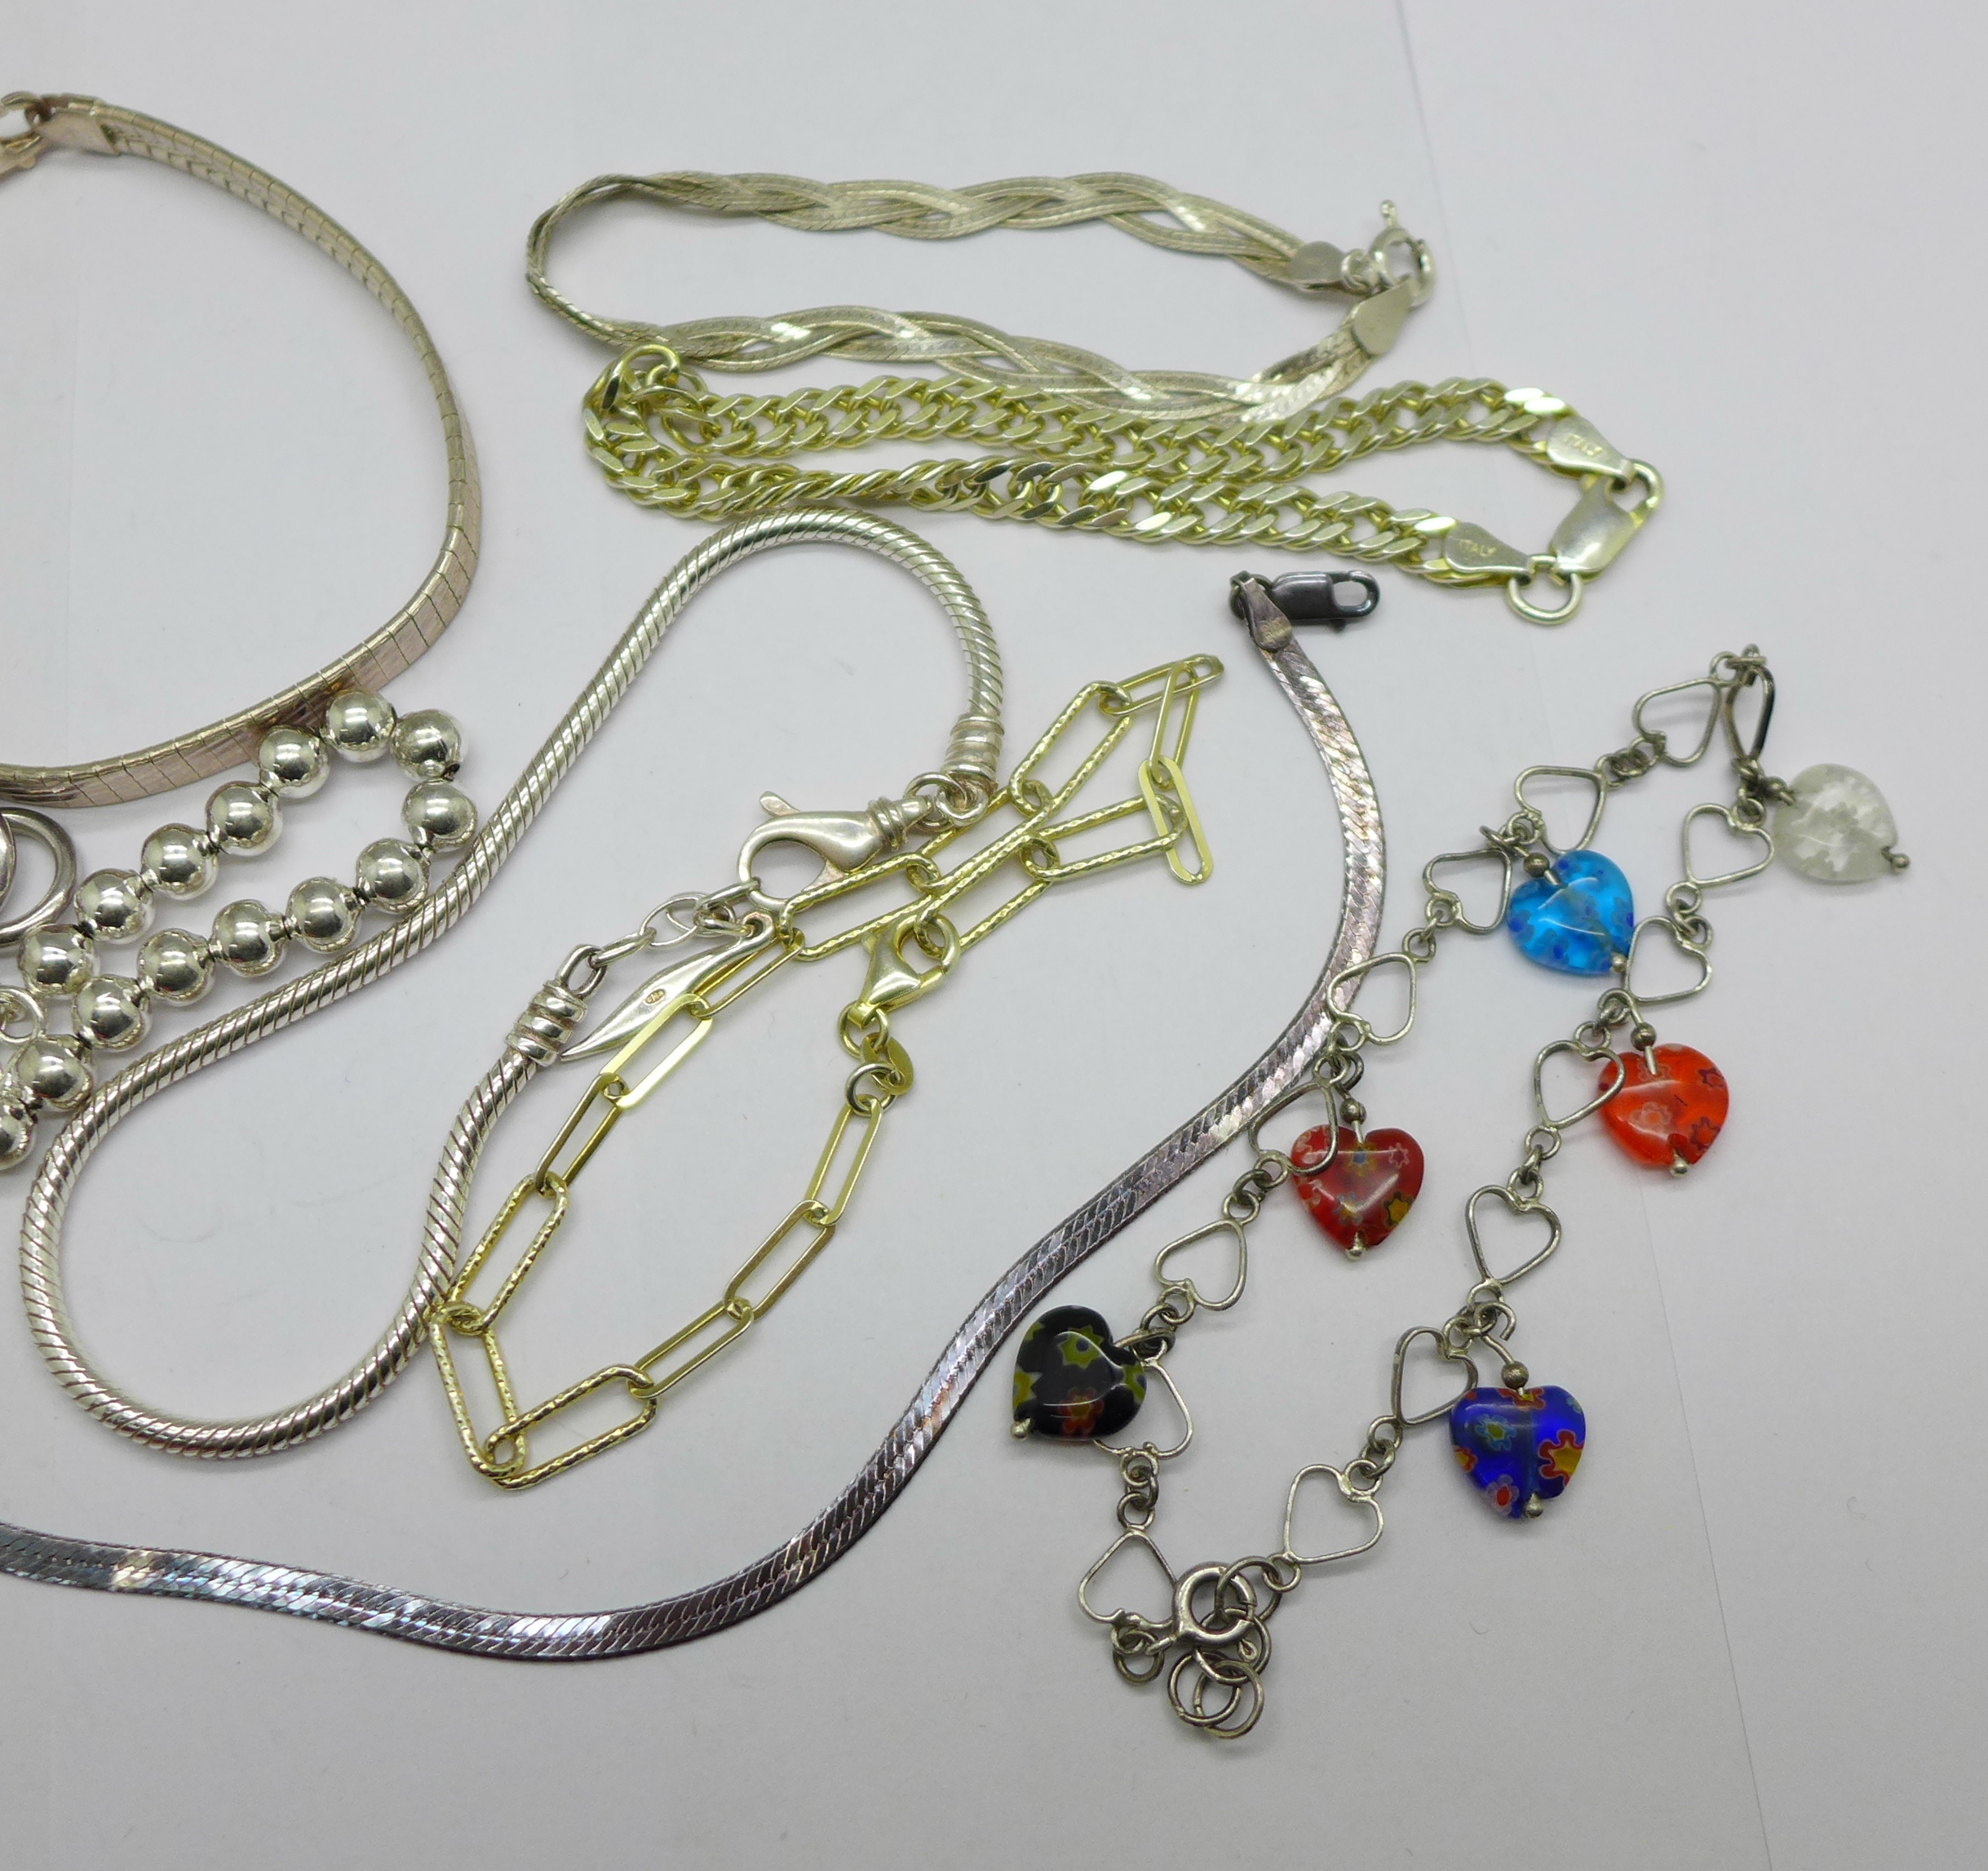 Ten silver bracelets and a silver necklace, 95g - Image 3 of 3